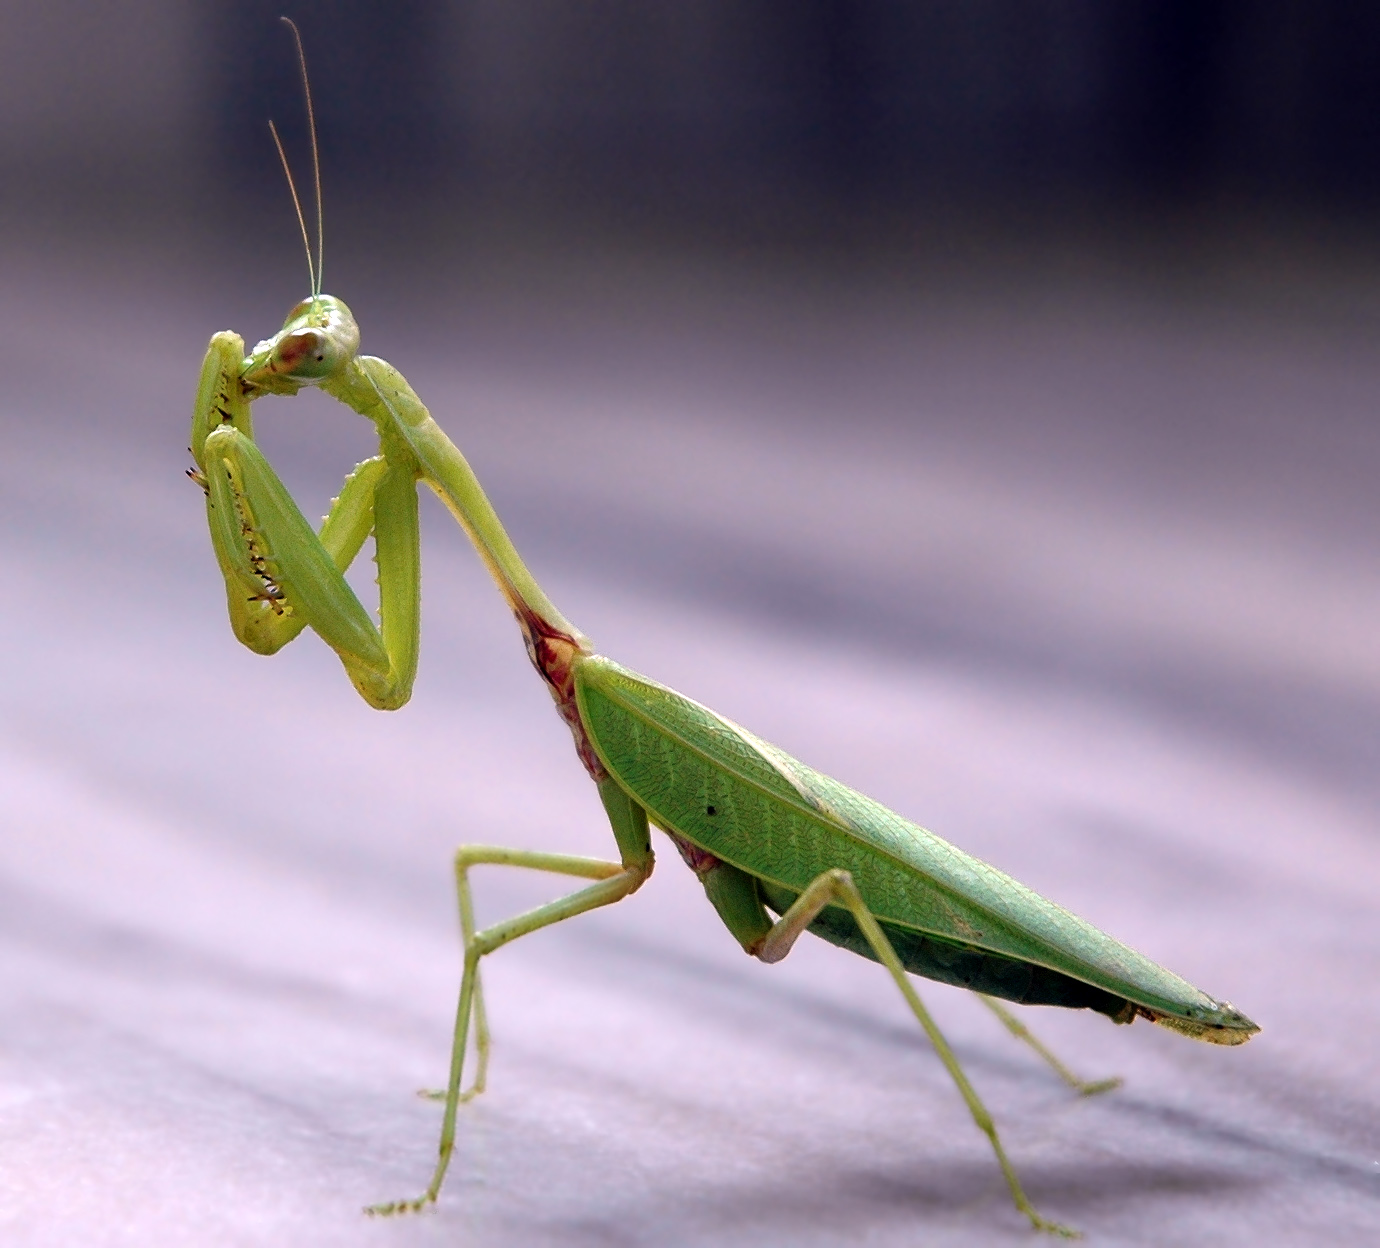 Praying_mantis_india.jpg